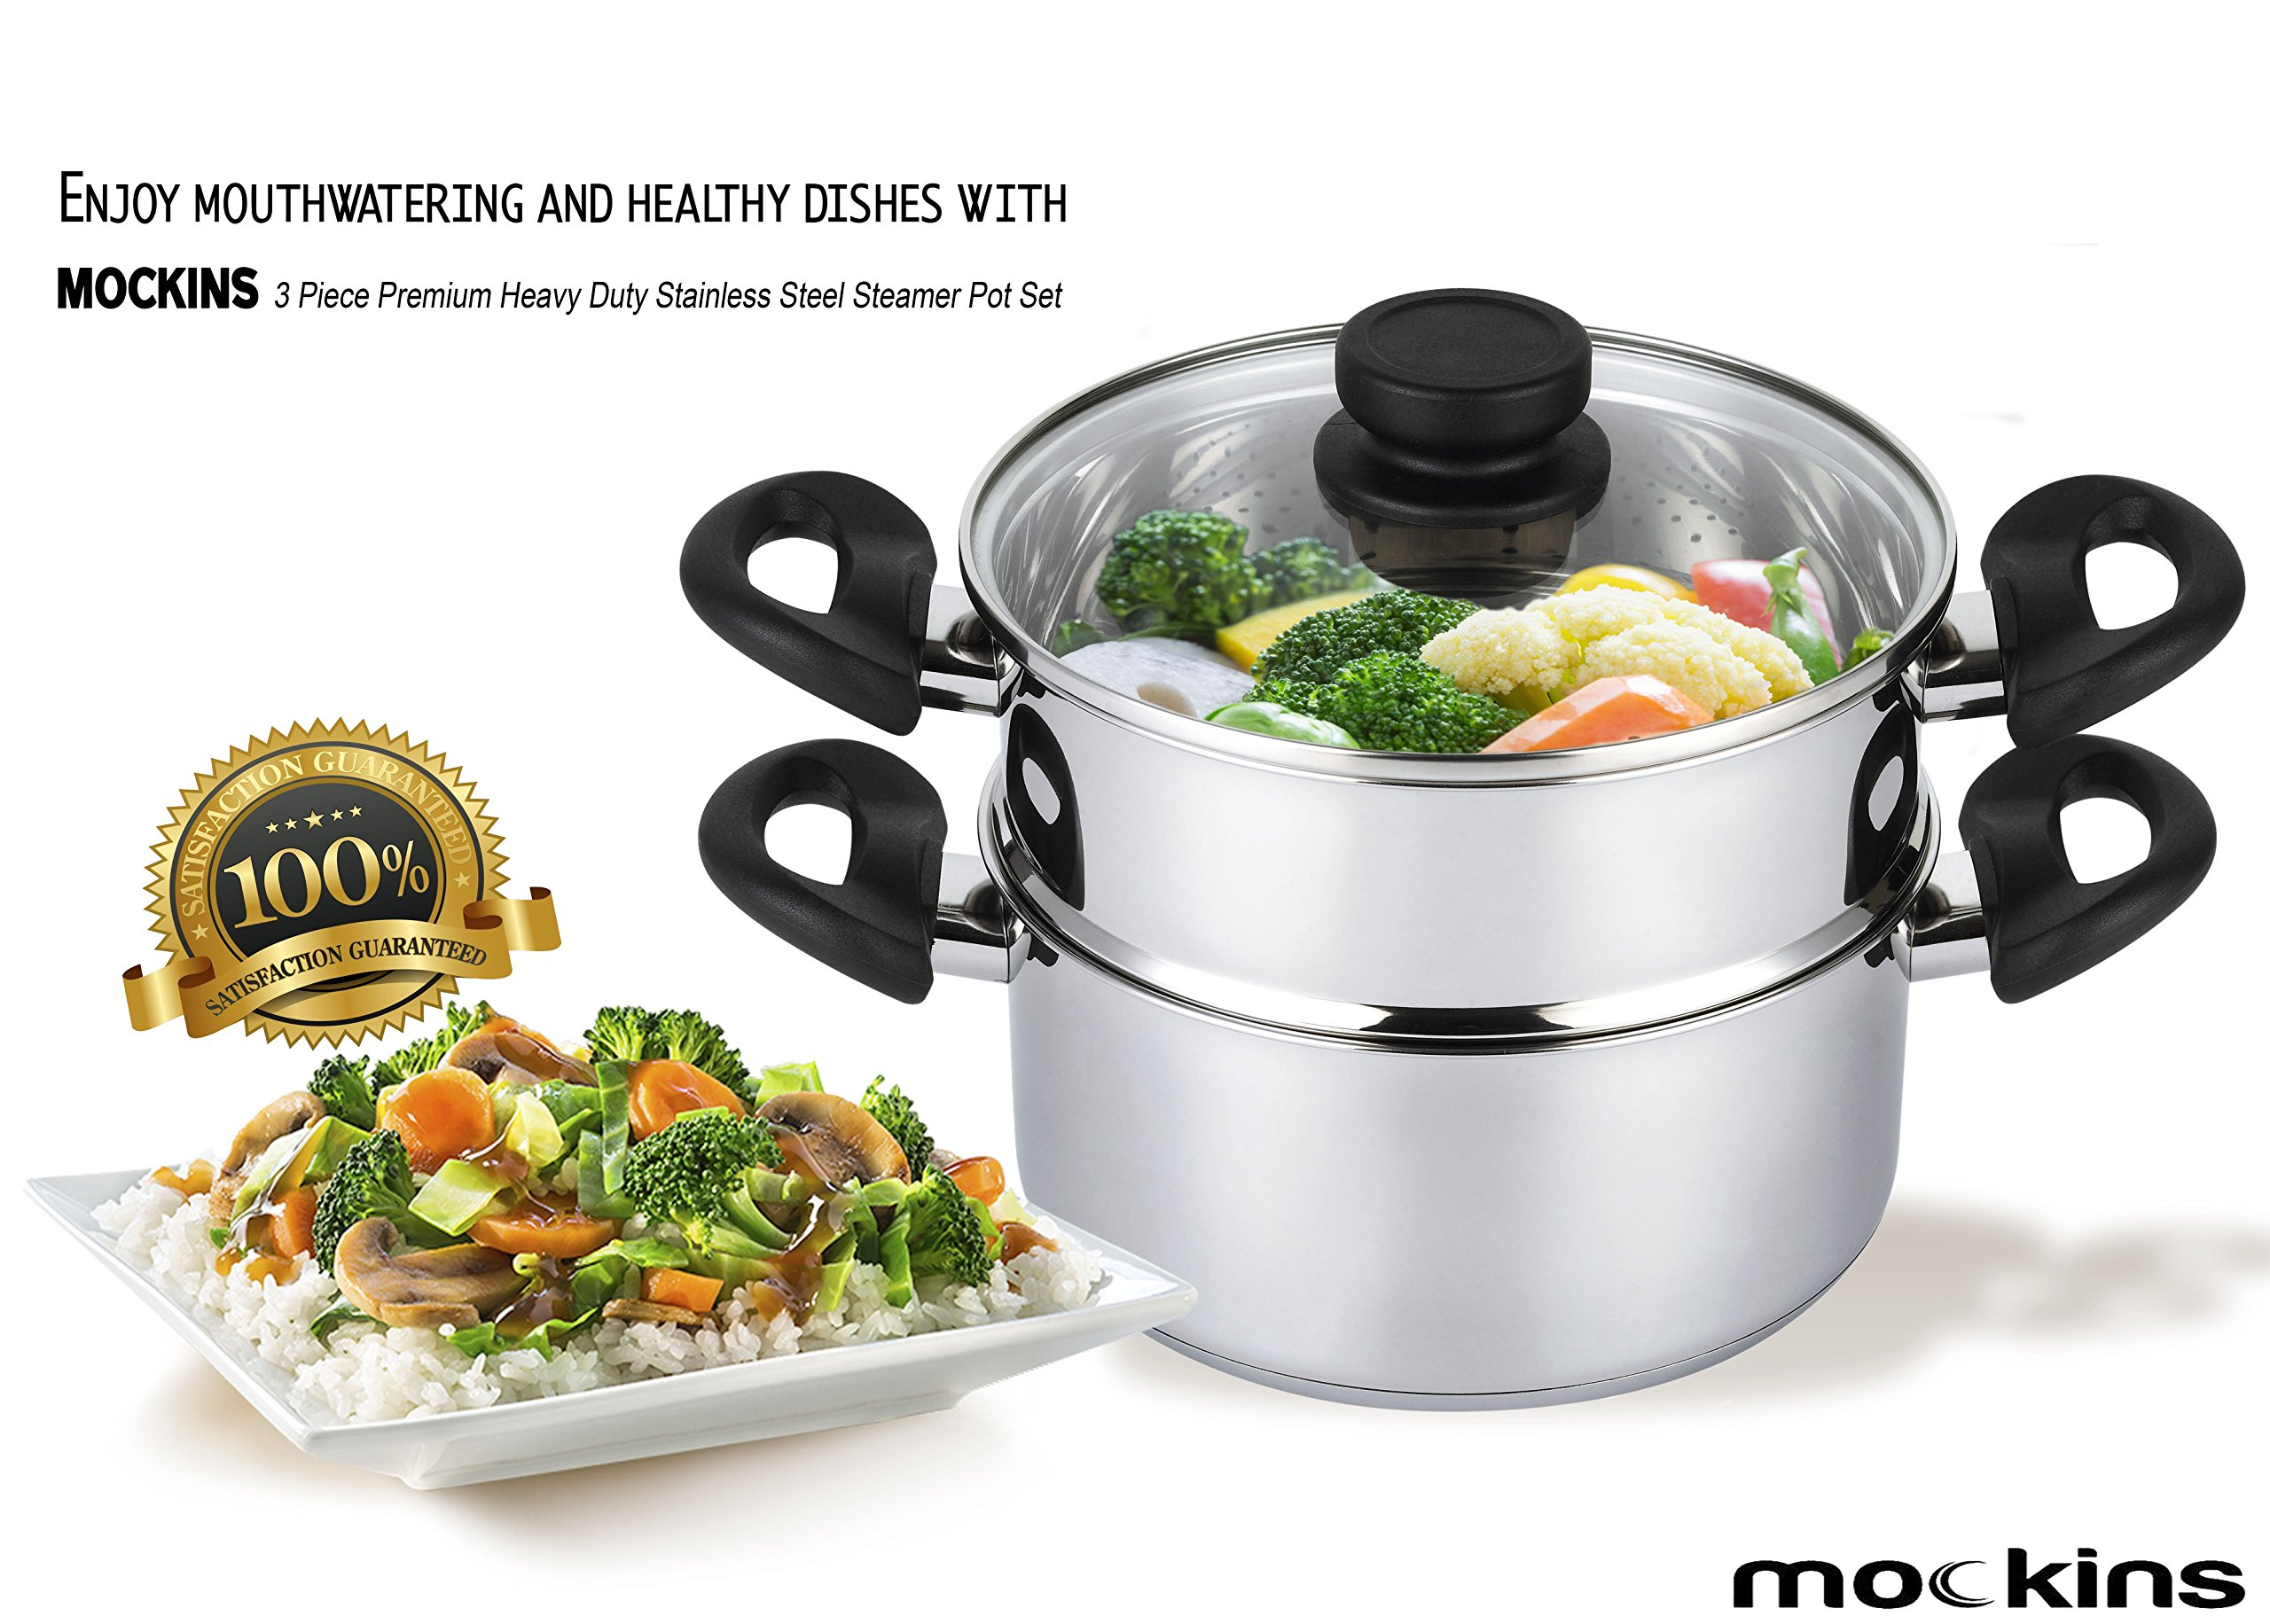 mockins 3 Piece Premium Heavy Duty Stainless Steel Steamer Pot Set Includes 3 Quart Cooking Pot, 2 Quart Steamer Insert and Vented Glass Lid | Stack and Steam Pot Set for All Cooking Surfaces by Mockins